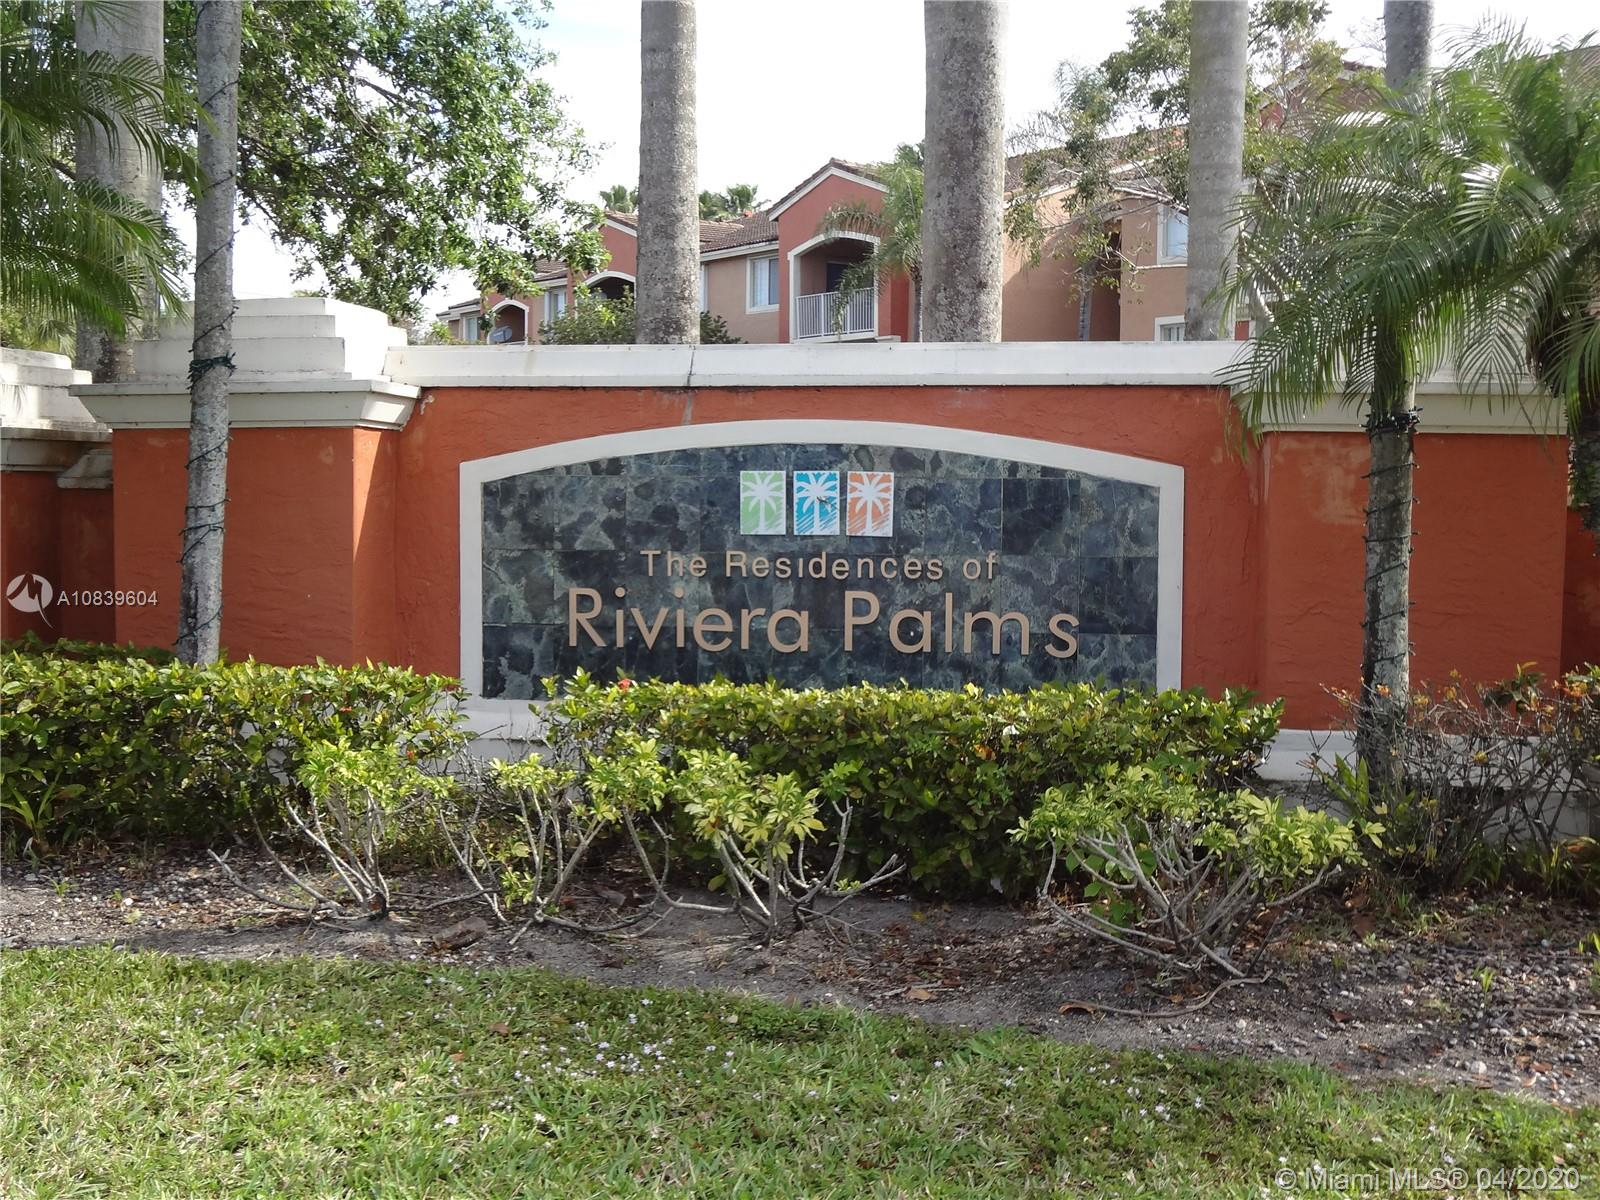 GROUND FLOOR - LAKE VIEW 2/2 APARTMENT.  WASHER AND DRYER IN UNIT.  SPLIT BEDROOM FLOORPLAN. GATED COMMUNITY.  WALK TO PROMENADE - SHOPPING & RESTAURANTS. SHORT DRIVE TO CASINO. GREAT ACCESS TO HIGHWAYS. IDEAL FOR OWNER OCCUPANT OR INVESTOR, IN PROCESS OF BEING PAINTED THIS WEEK.